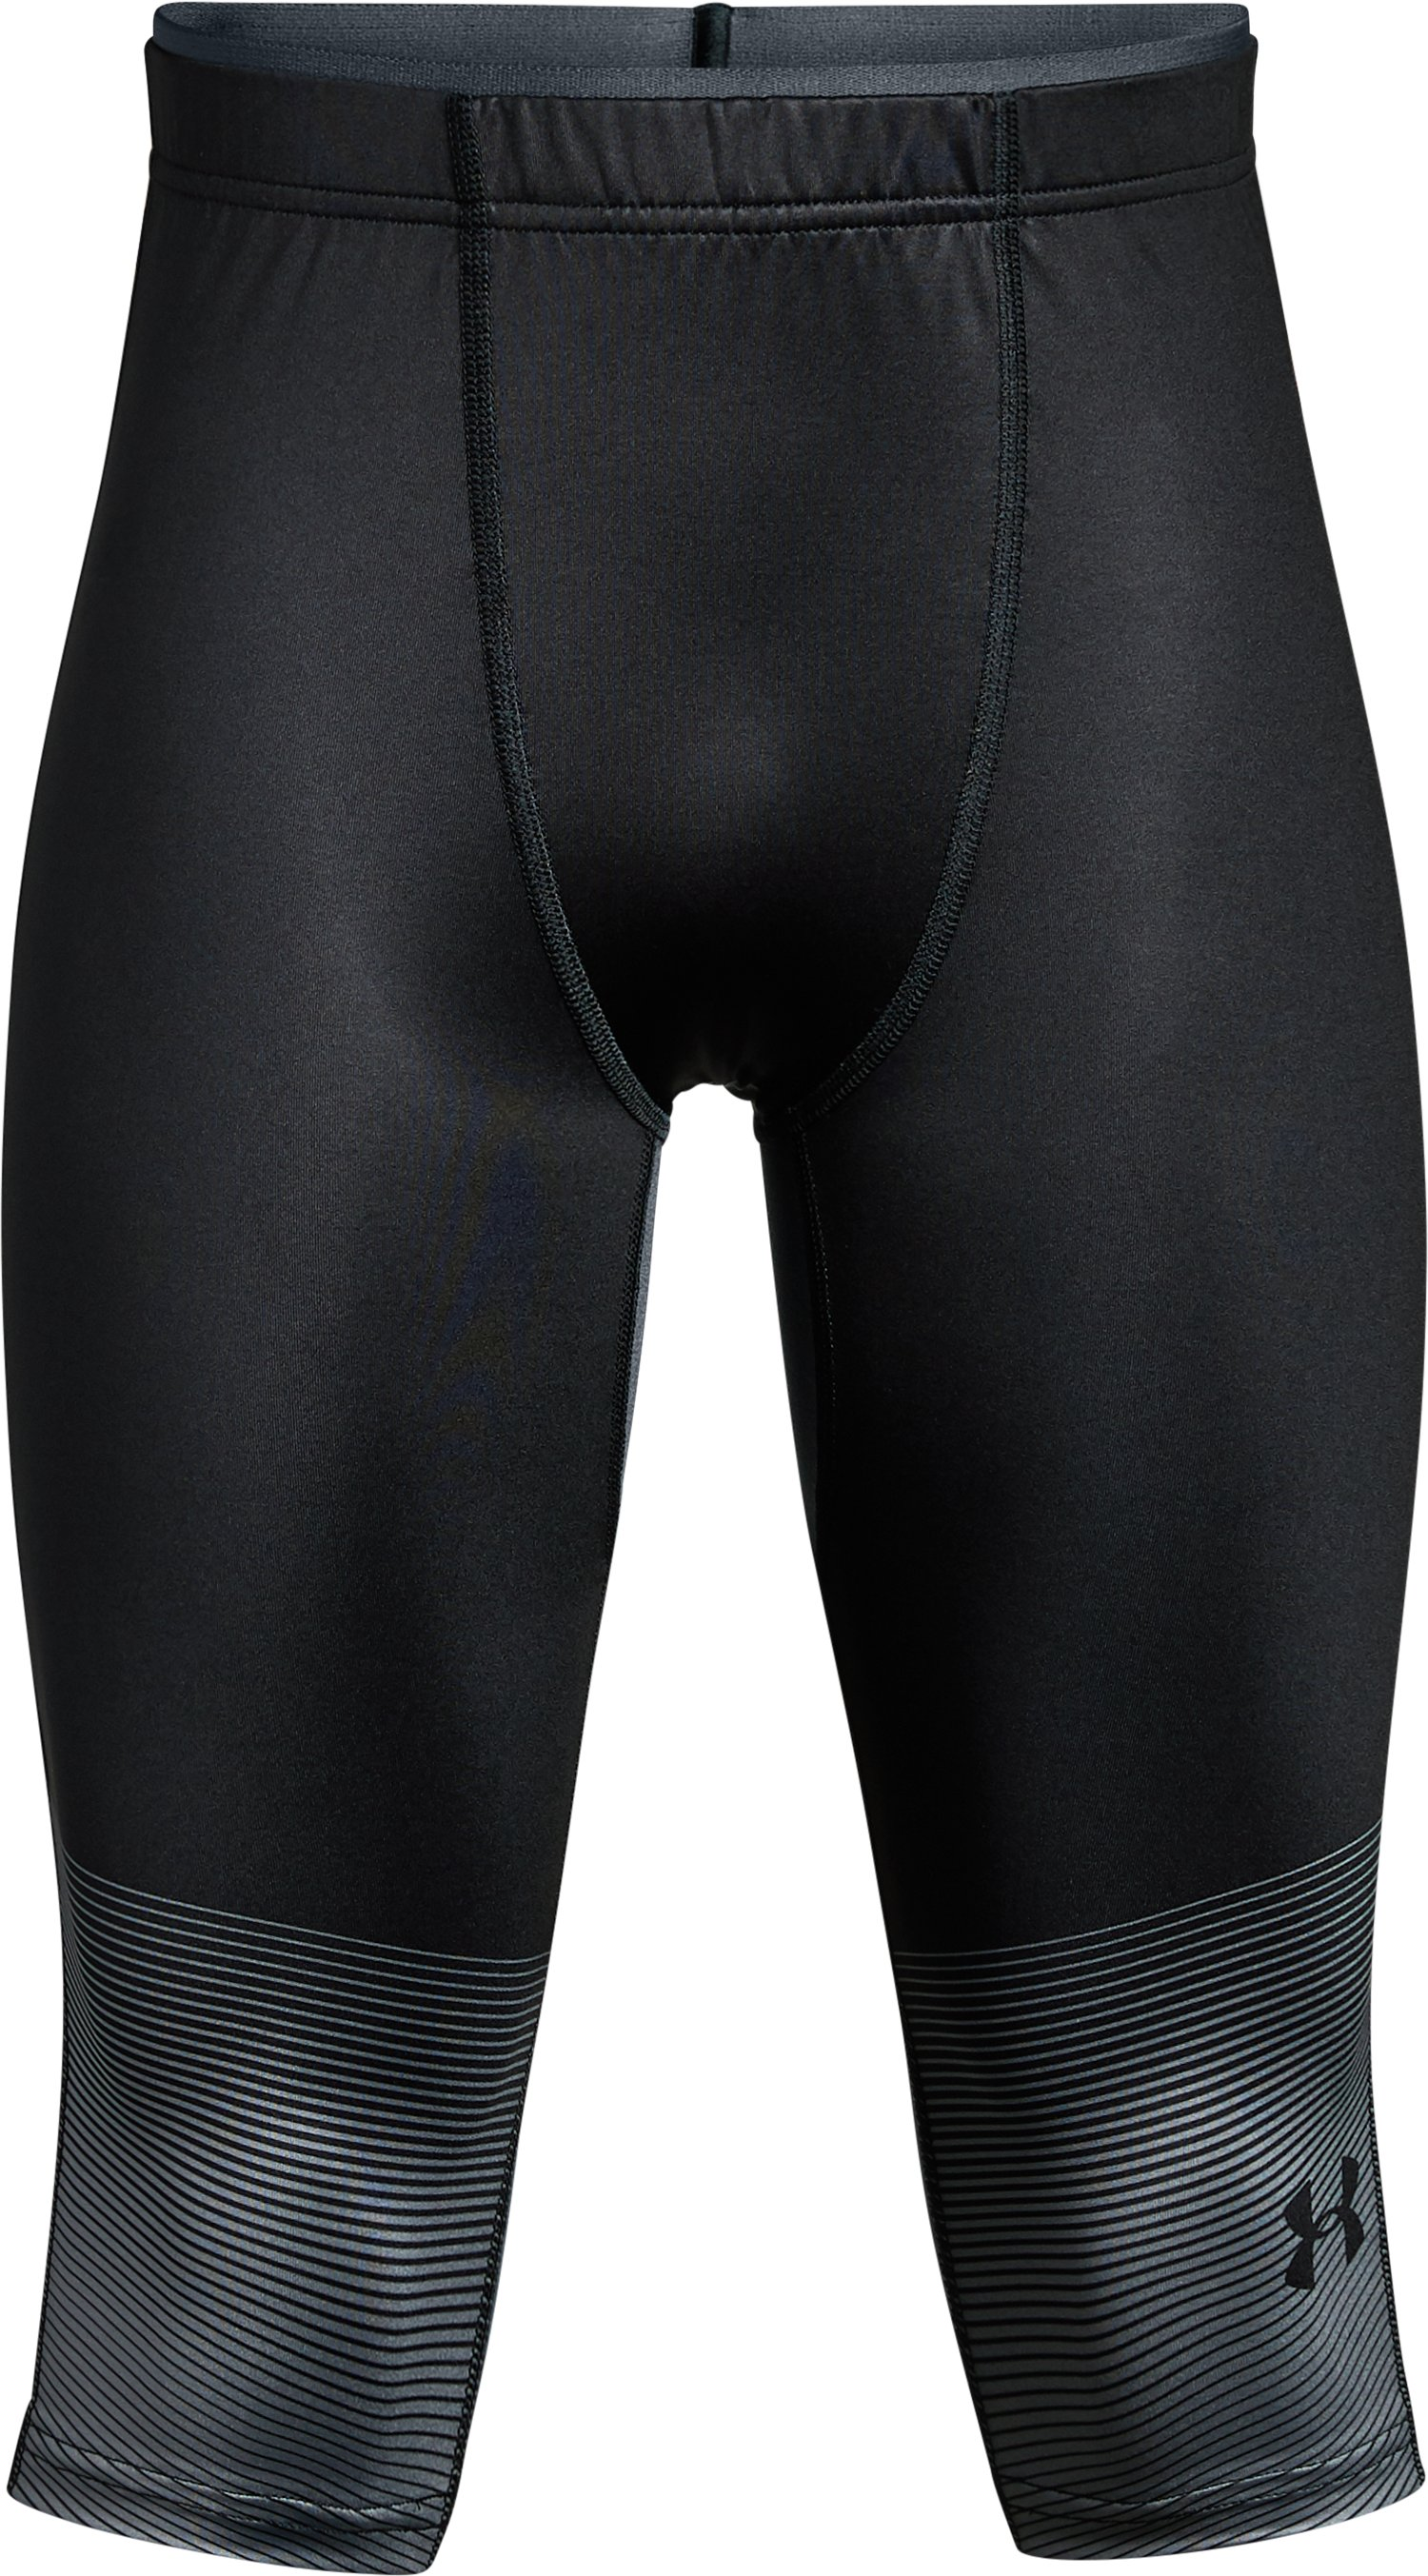 Boys' UA X Level Knee Tights, Black